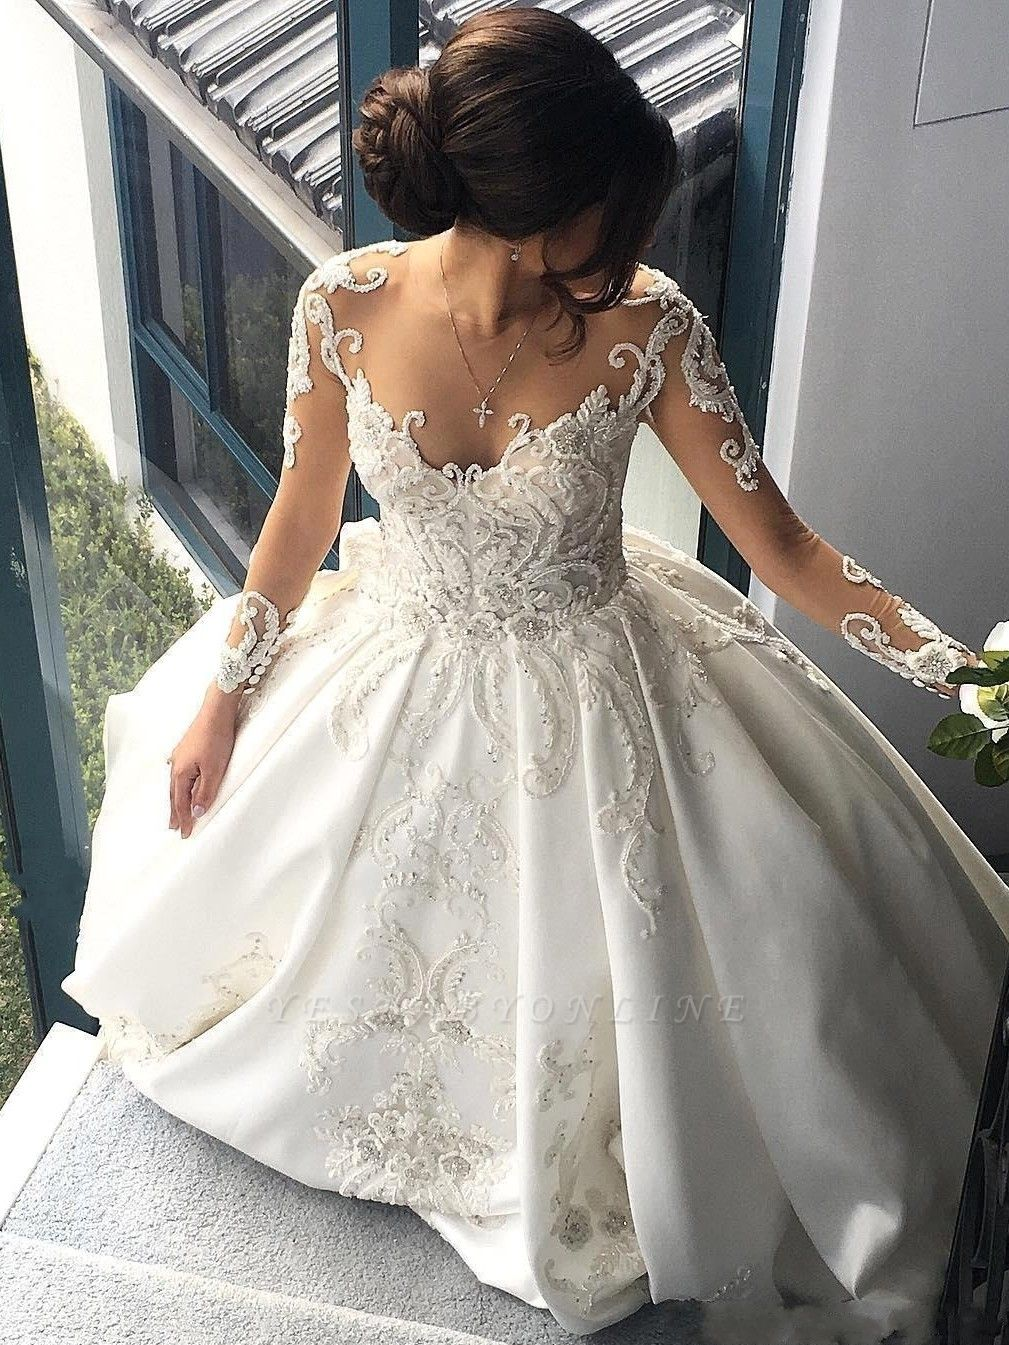 Charming Princess Ball Gown Wedding Dresses | See Through Long Sleeves Chapel Train Bridal Gowns